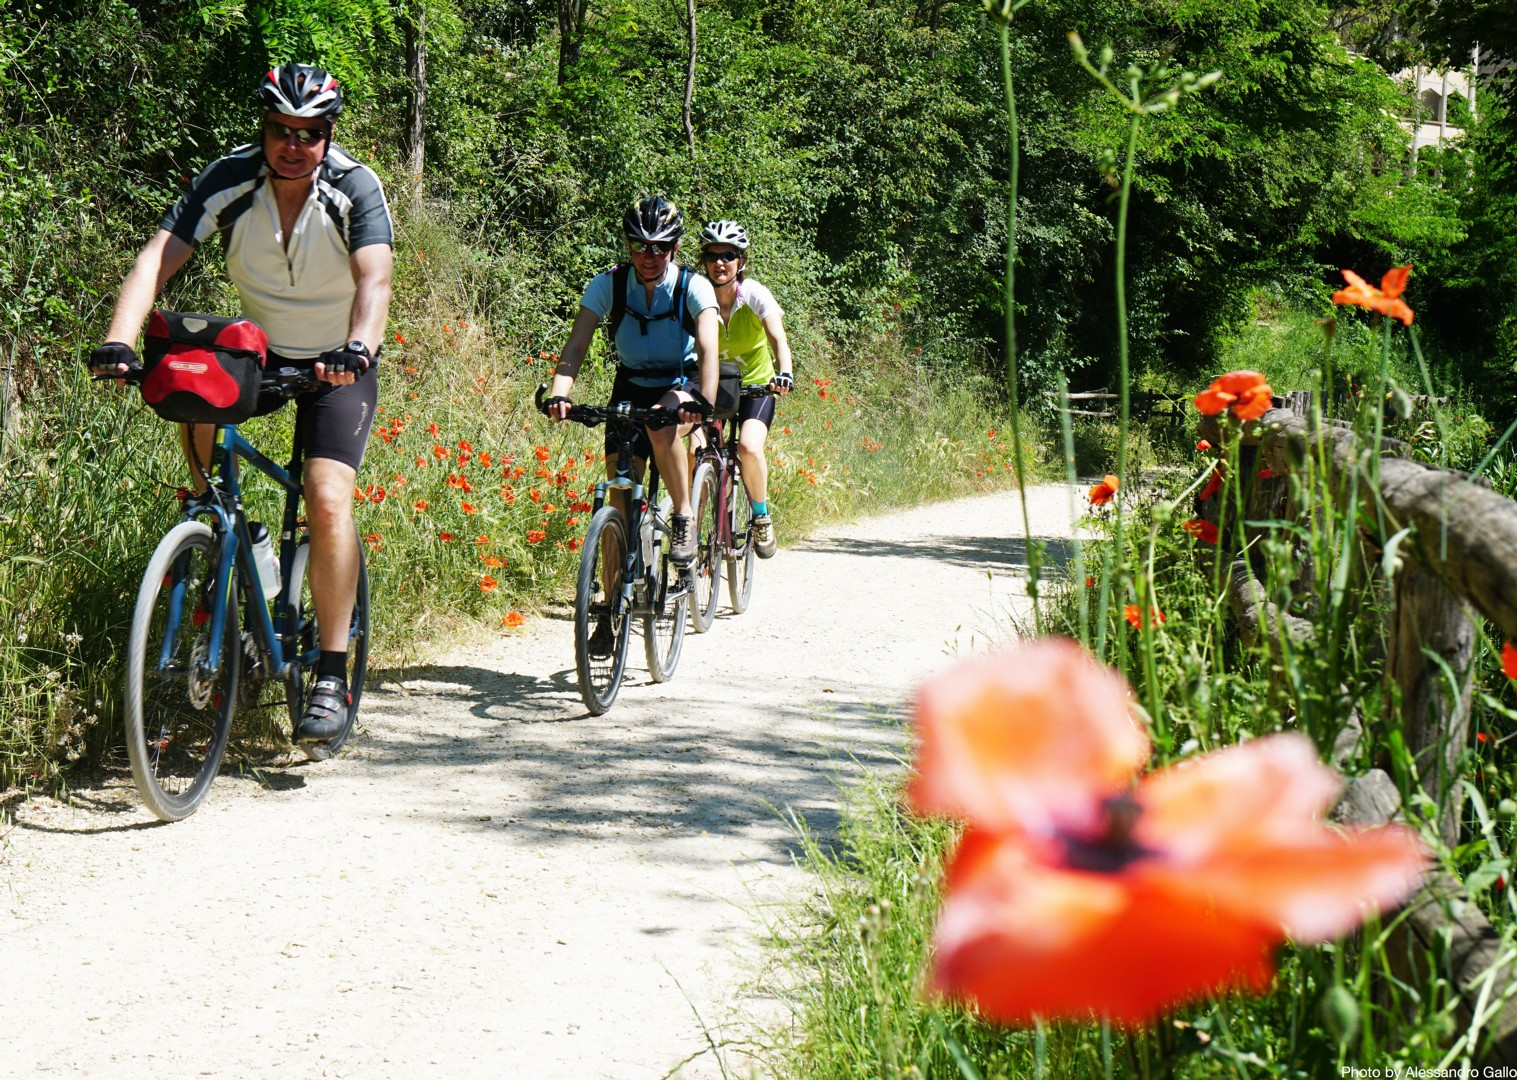 spello-green-heart-of-umbria-italy-self-guided-leisure-cycling.JPG - Italy - Spirit of Umbria - Family Cycling